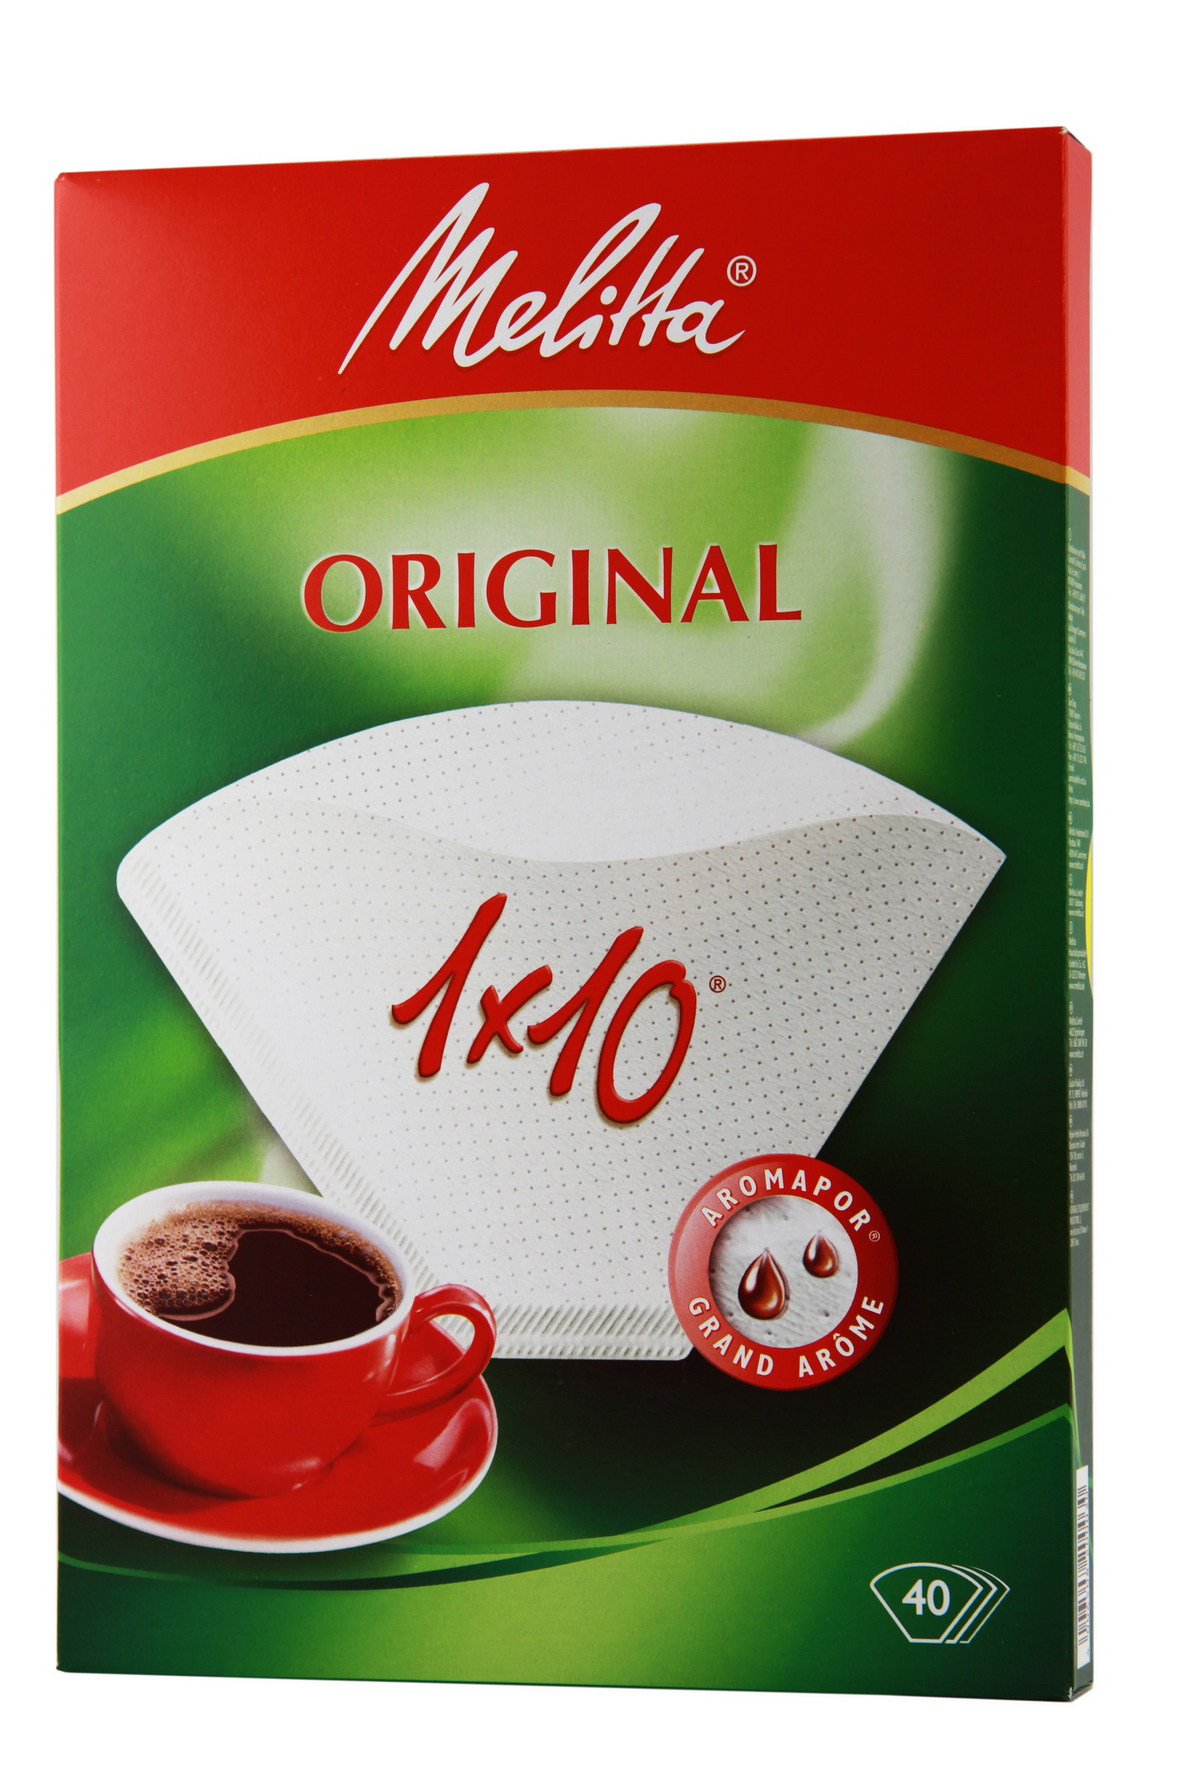 In Petto Messeservice (Düsseldorf, Essen, Köln) Melitta Original 1×10 40Stk